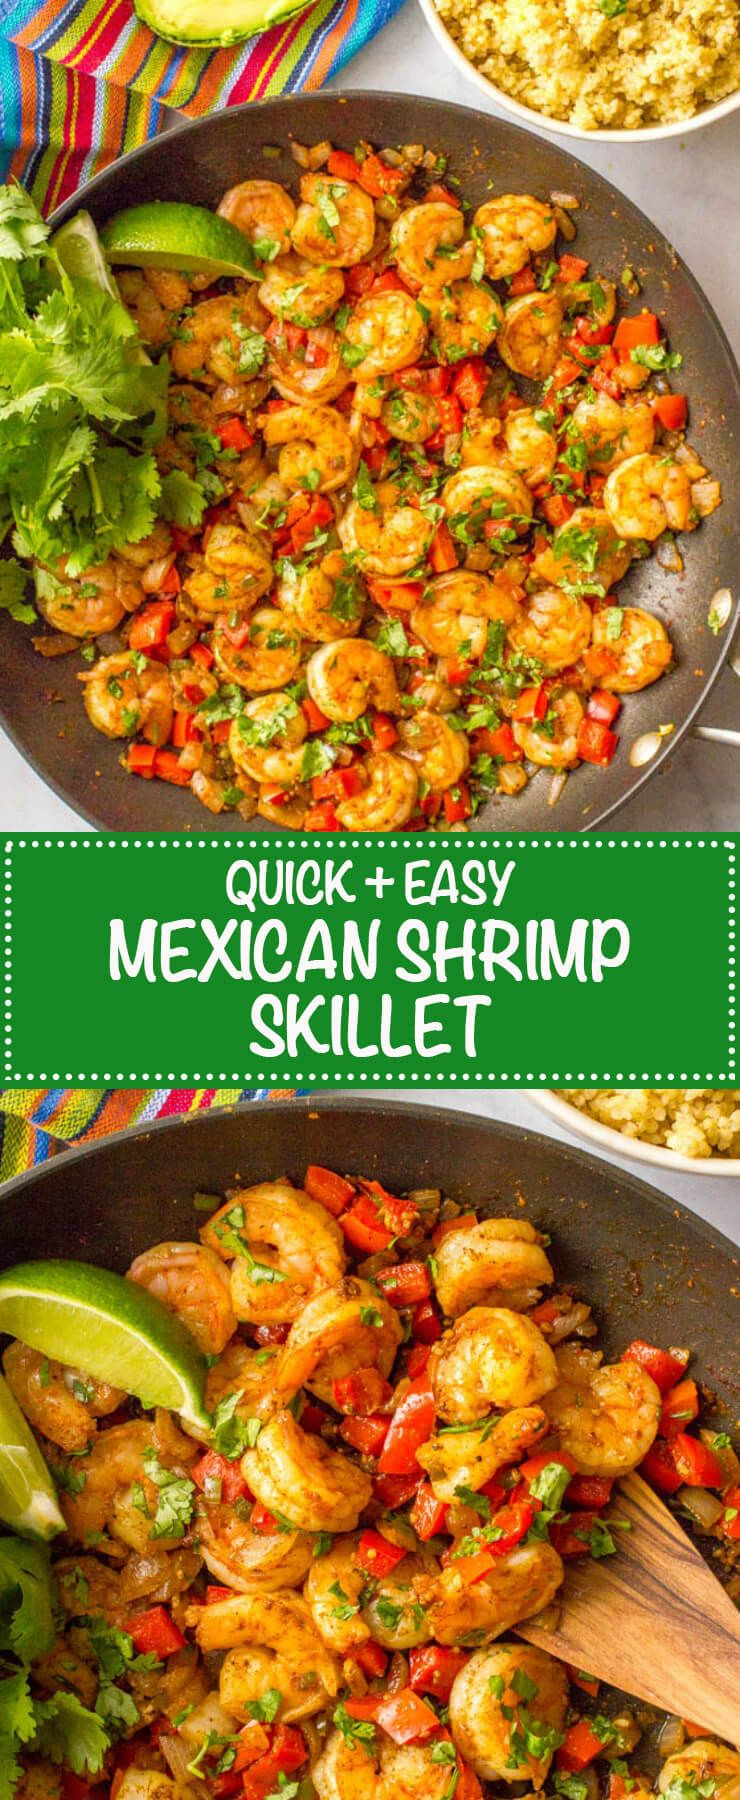 Quick + easy Mexican shrimp skillet (+ video) - Family Food on the Table